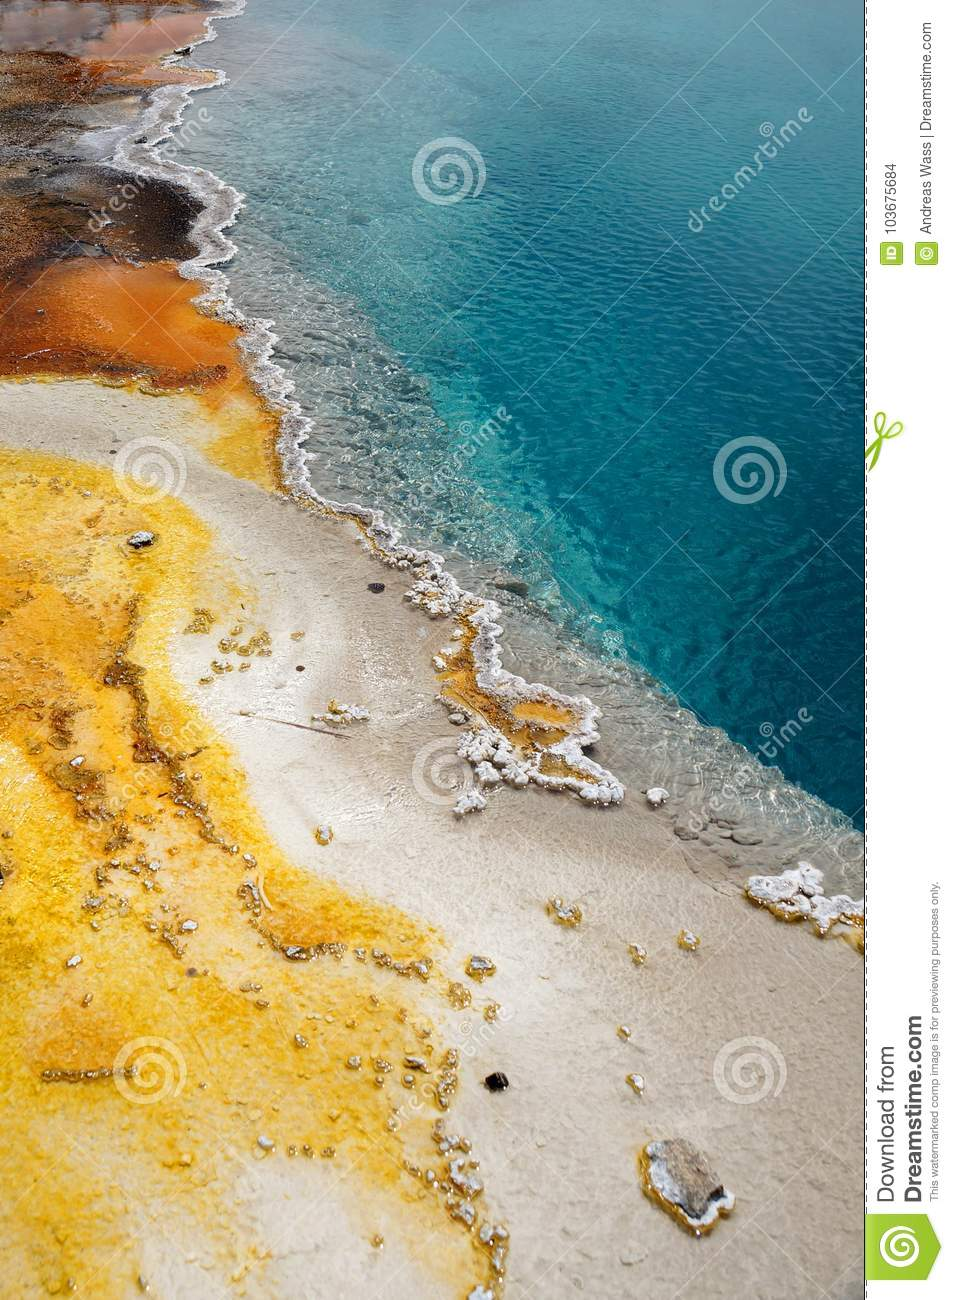 Closeup of colorful details at a geothermal pool